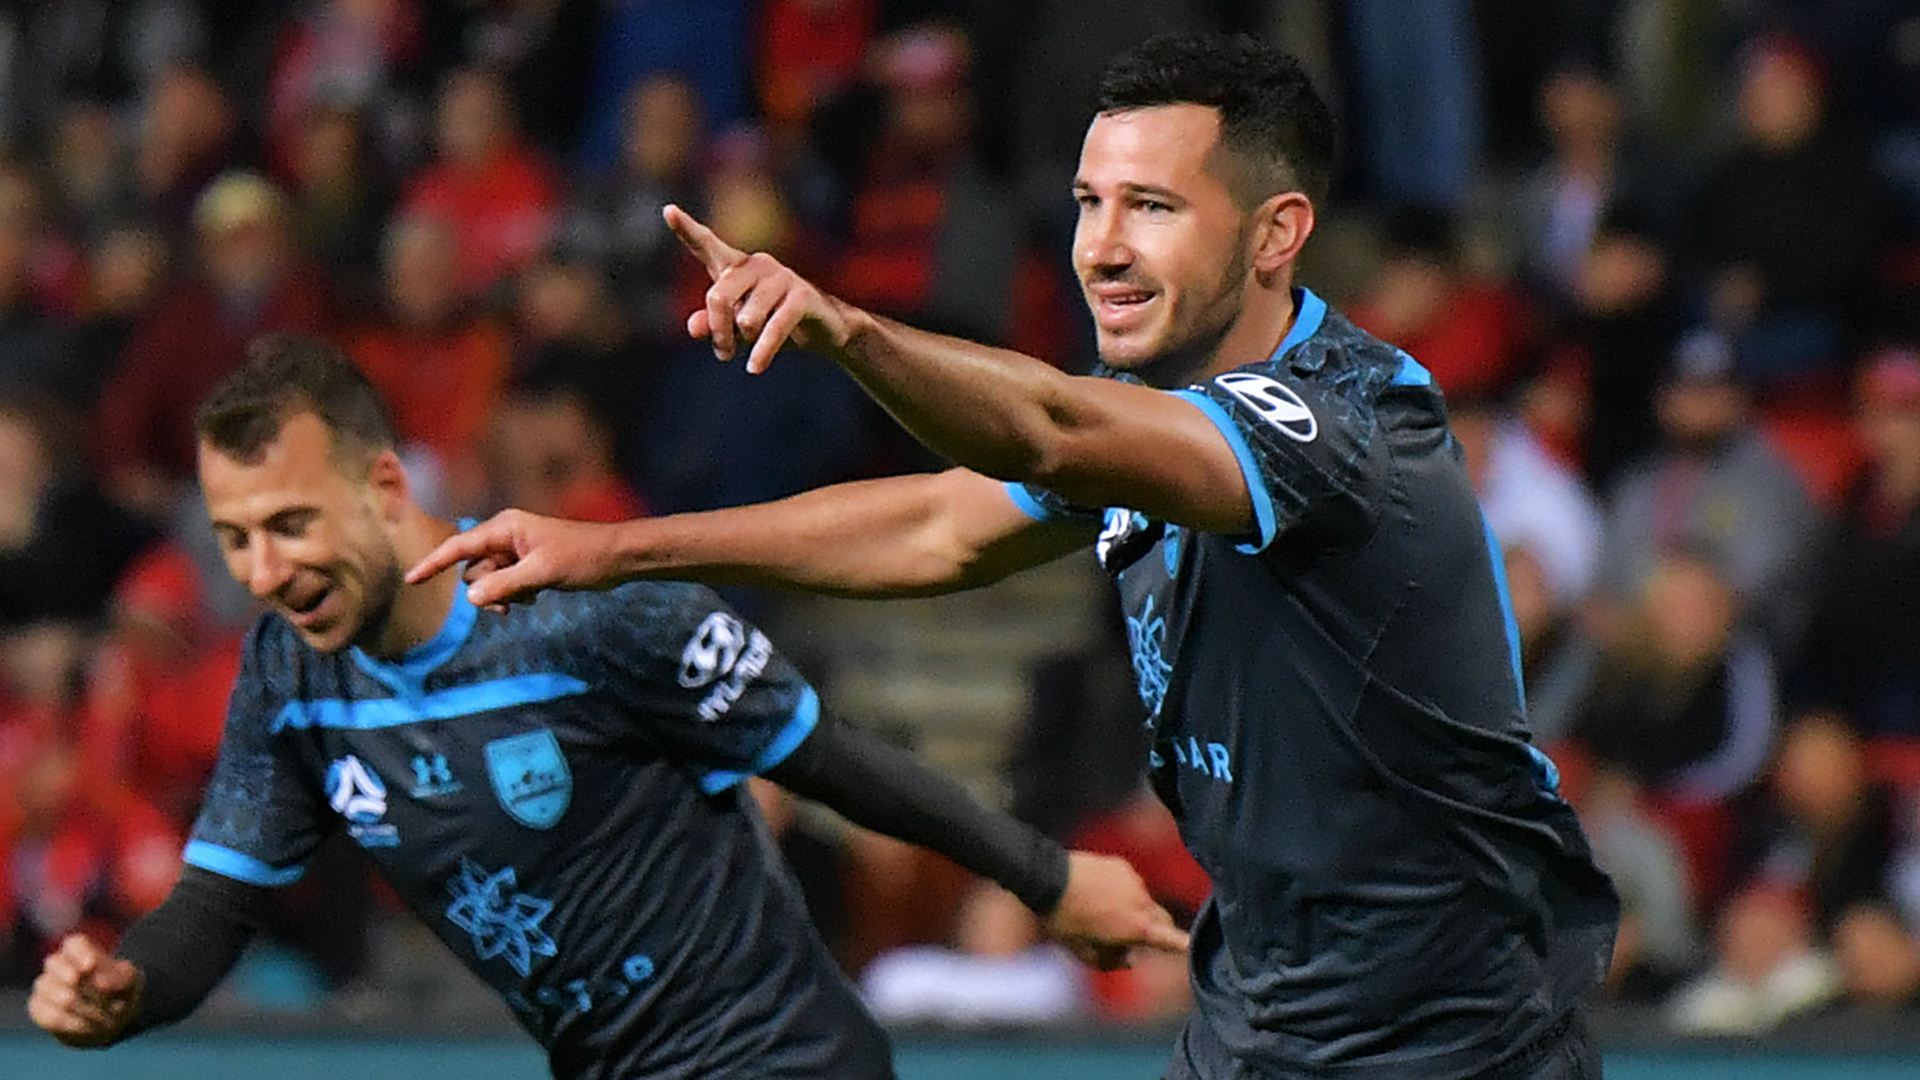 Adelaide United 2-3 Sydney FC: McGowan header sinks 10-man Reds after Le Fondre double